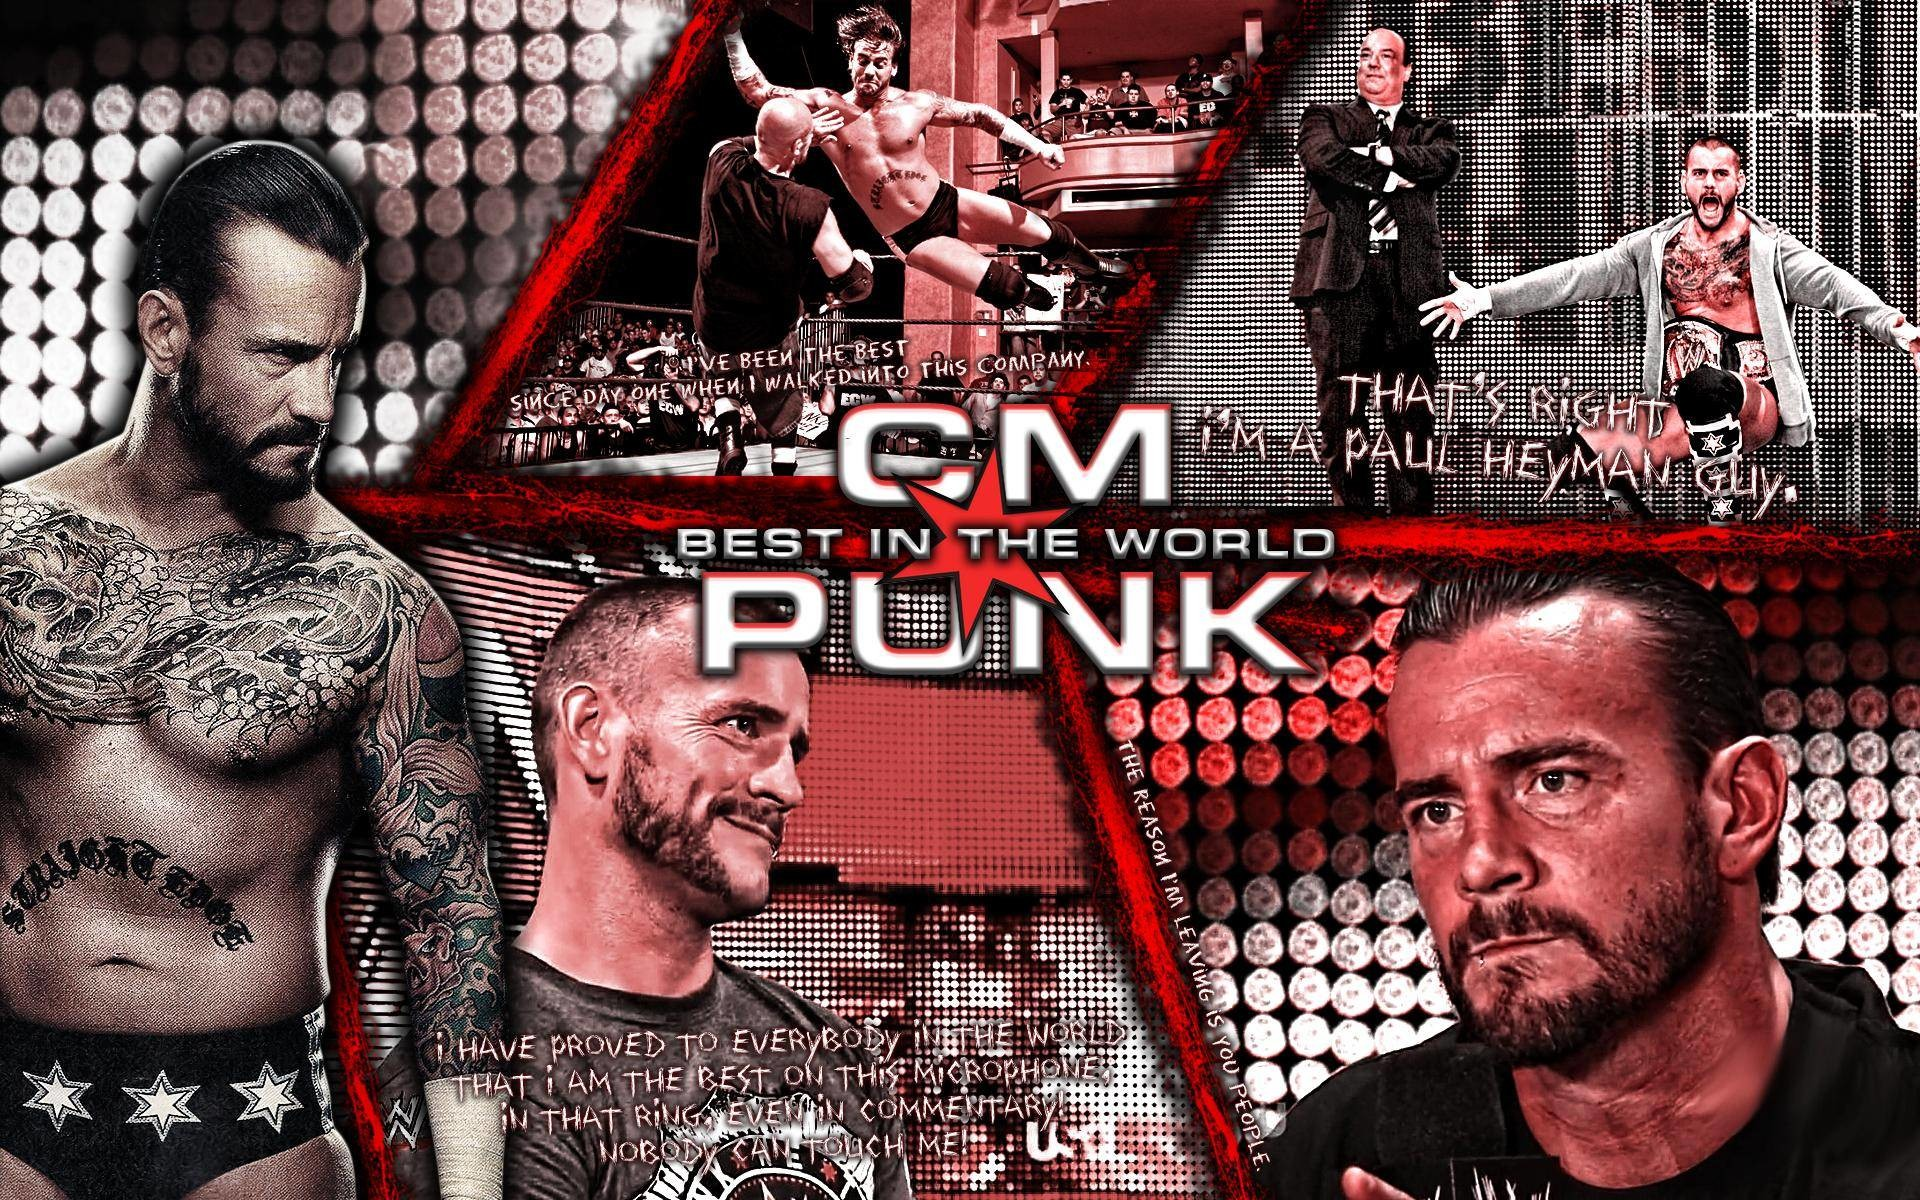 Wwe cm punk wallpaper 2018 66 images 1920x1200 cm punk hd wallpapers voltagebd Choice Image